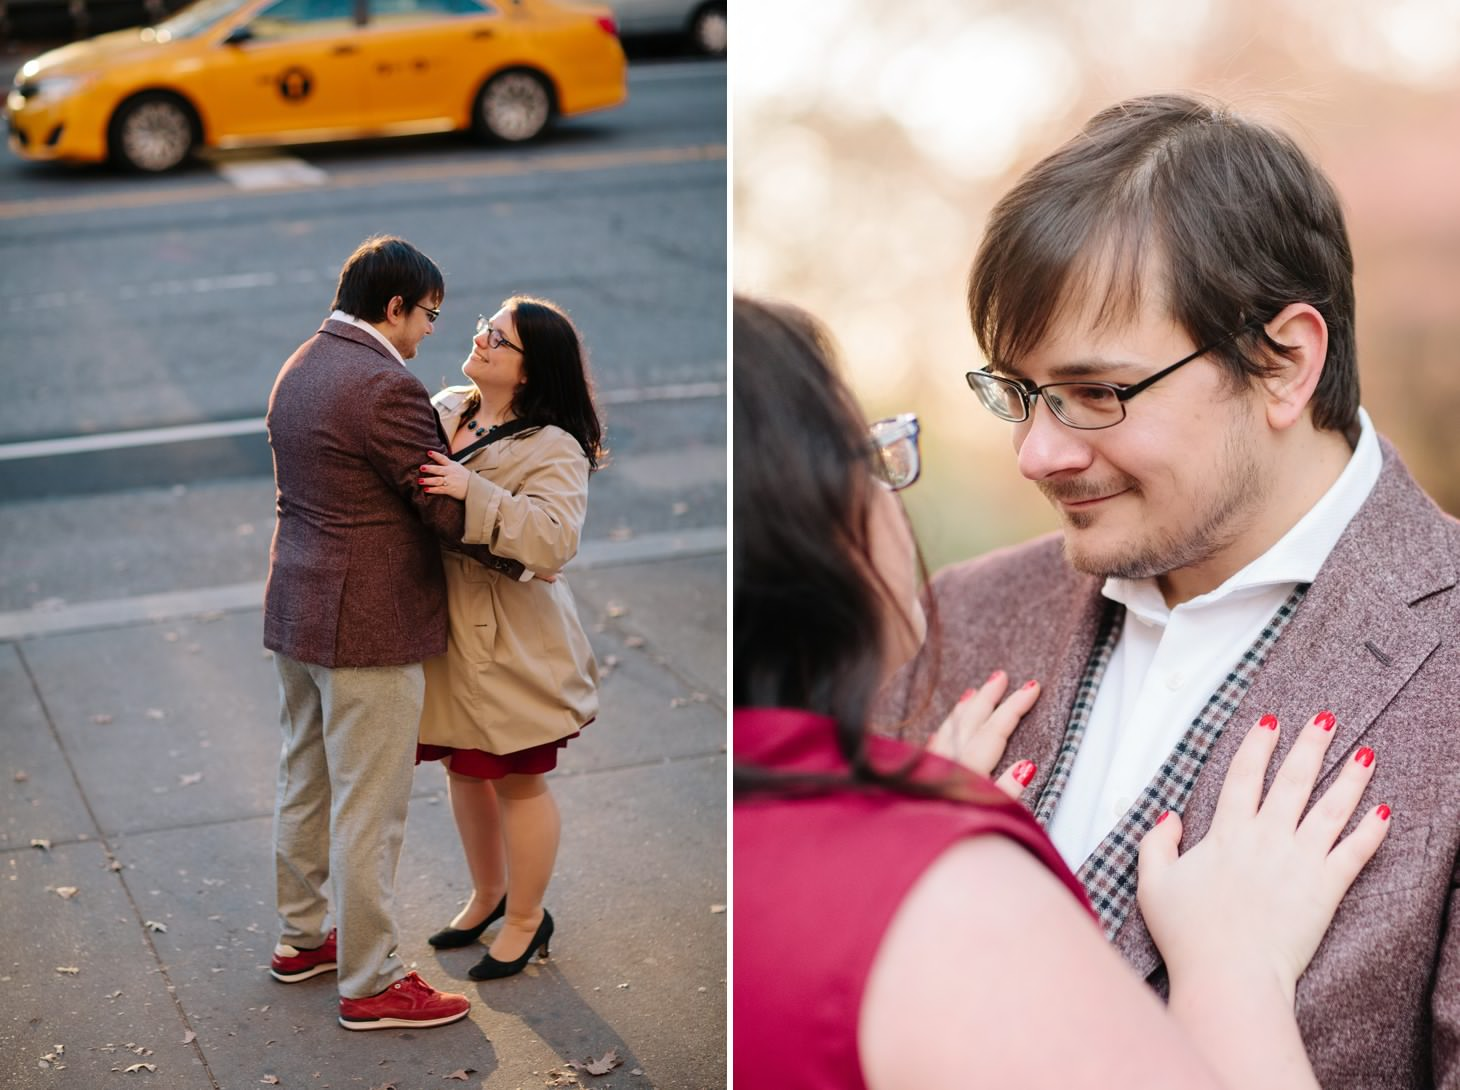 004-nyc-wedding-photographer-puppy-museum-of-natural-history-mud-coffee-fall-central-park-engagement.jpg